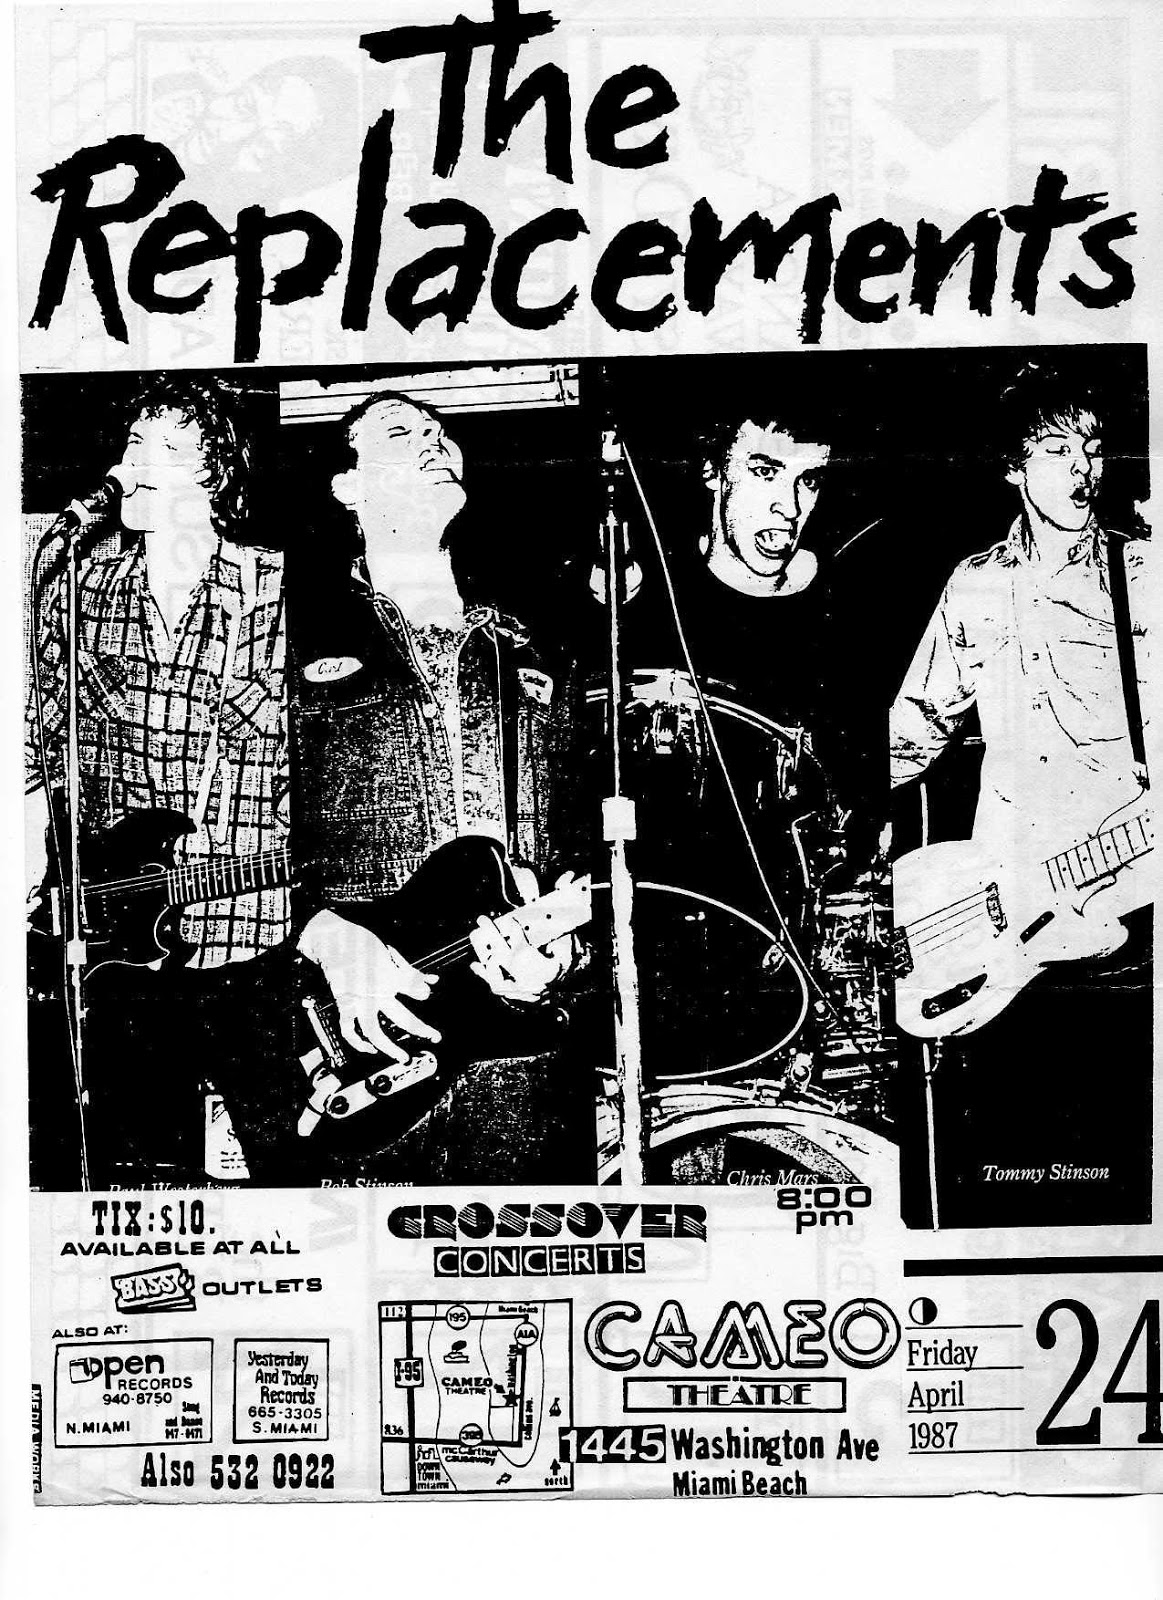 The Replacements foto 4